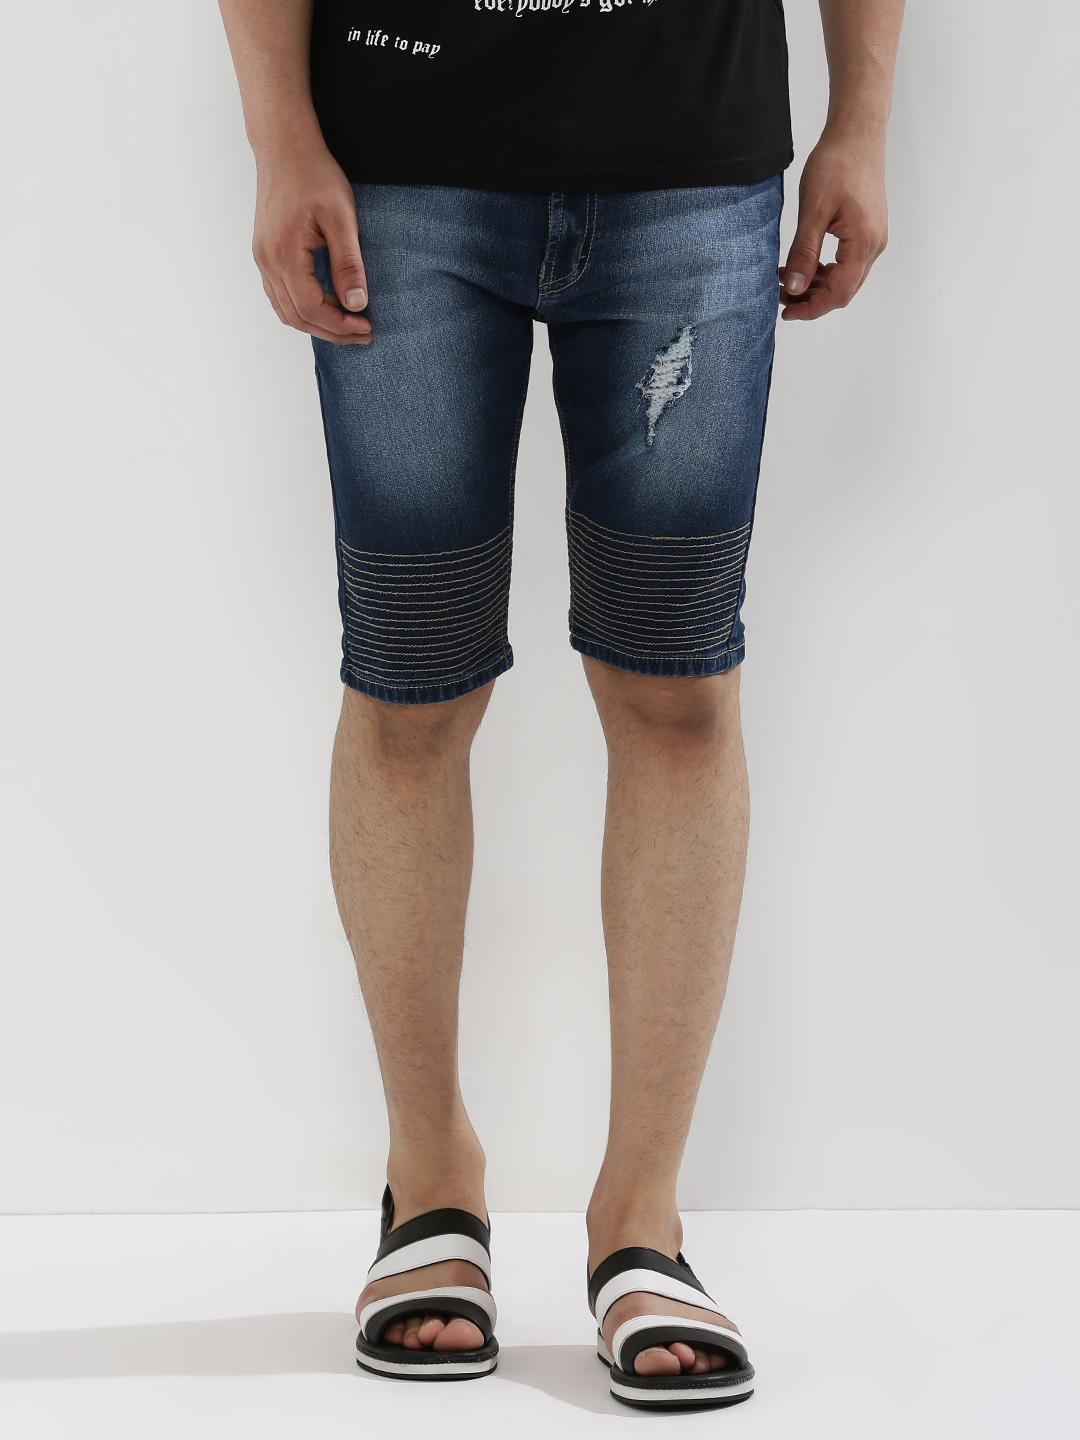 Deezeno Blue Light Wash Distressed Denim Shorts 1